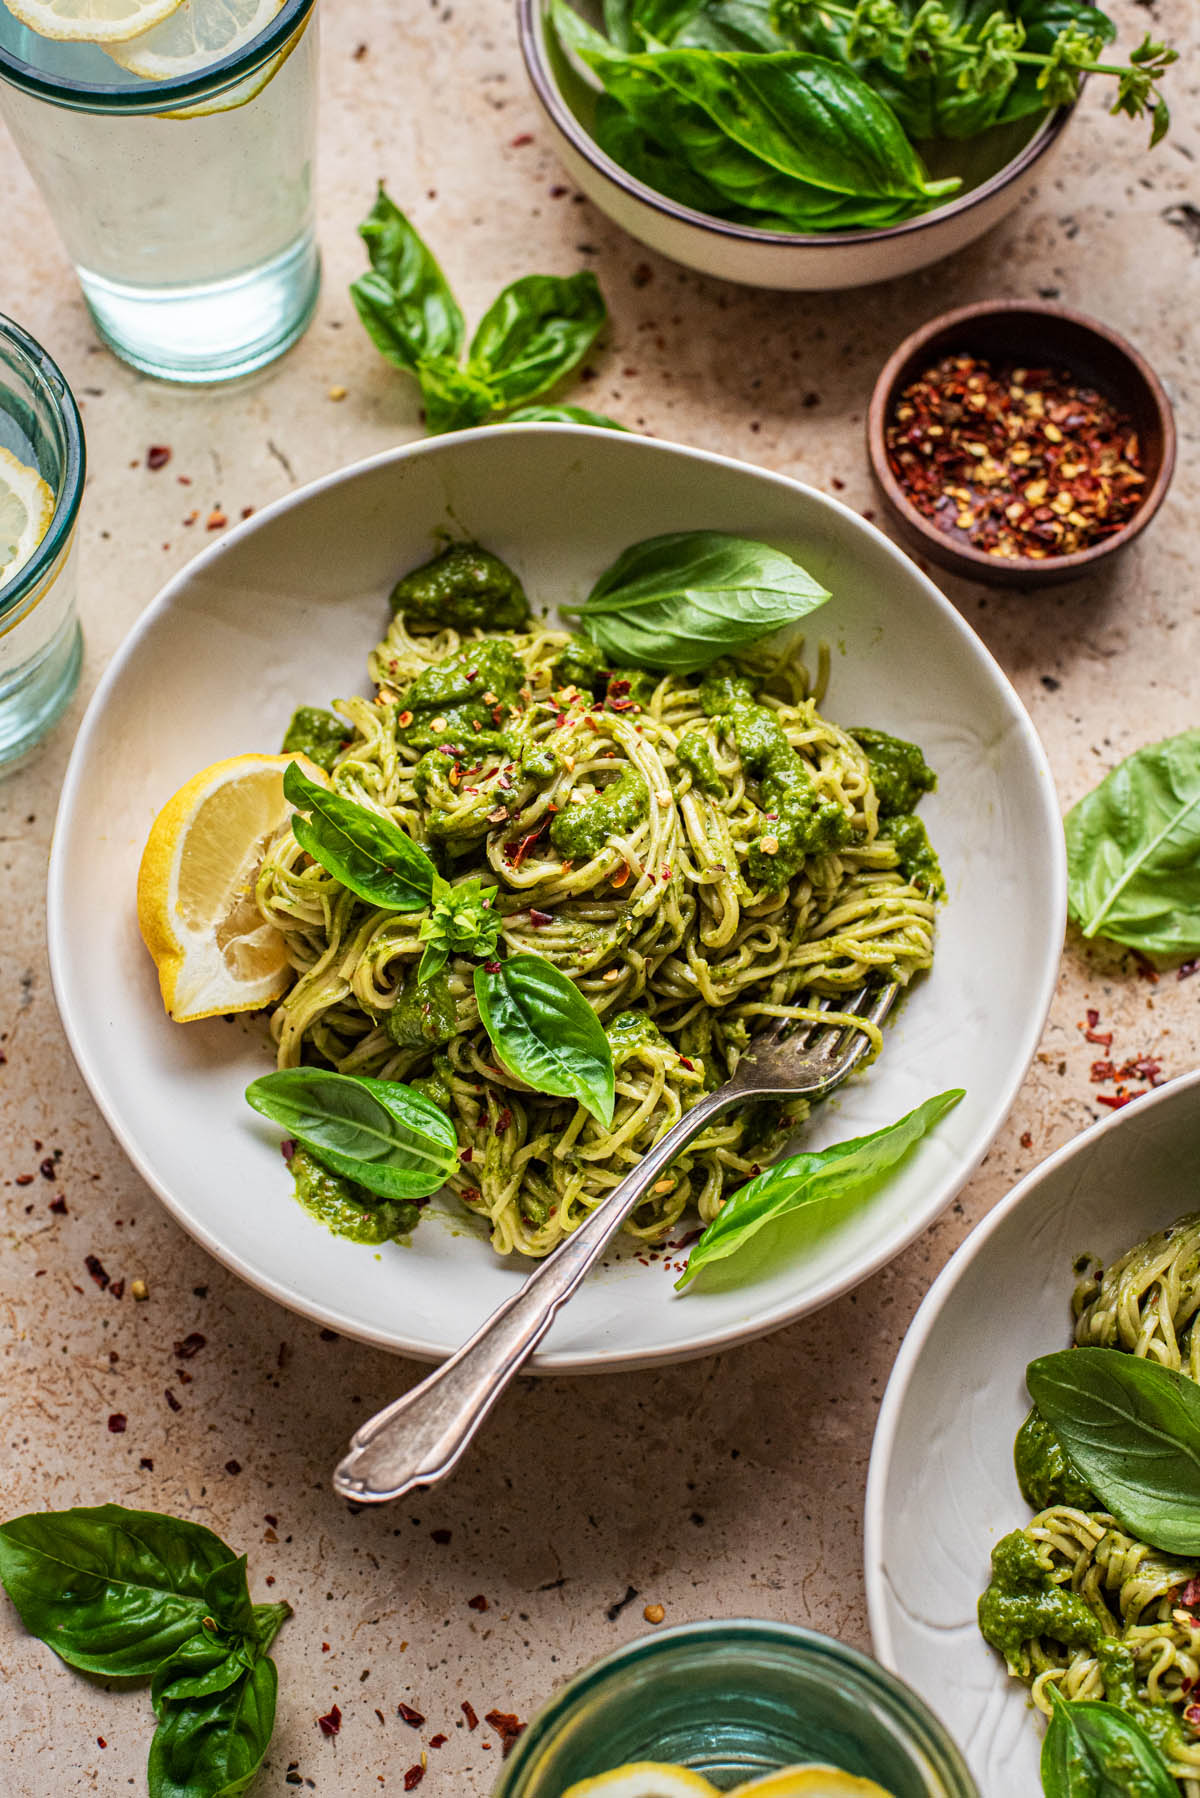 A bowl of pasta with green sauce and basil, with another bowl in the bottom right corner.